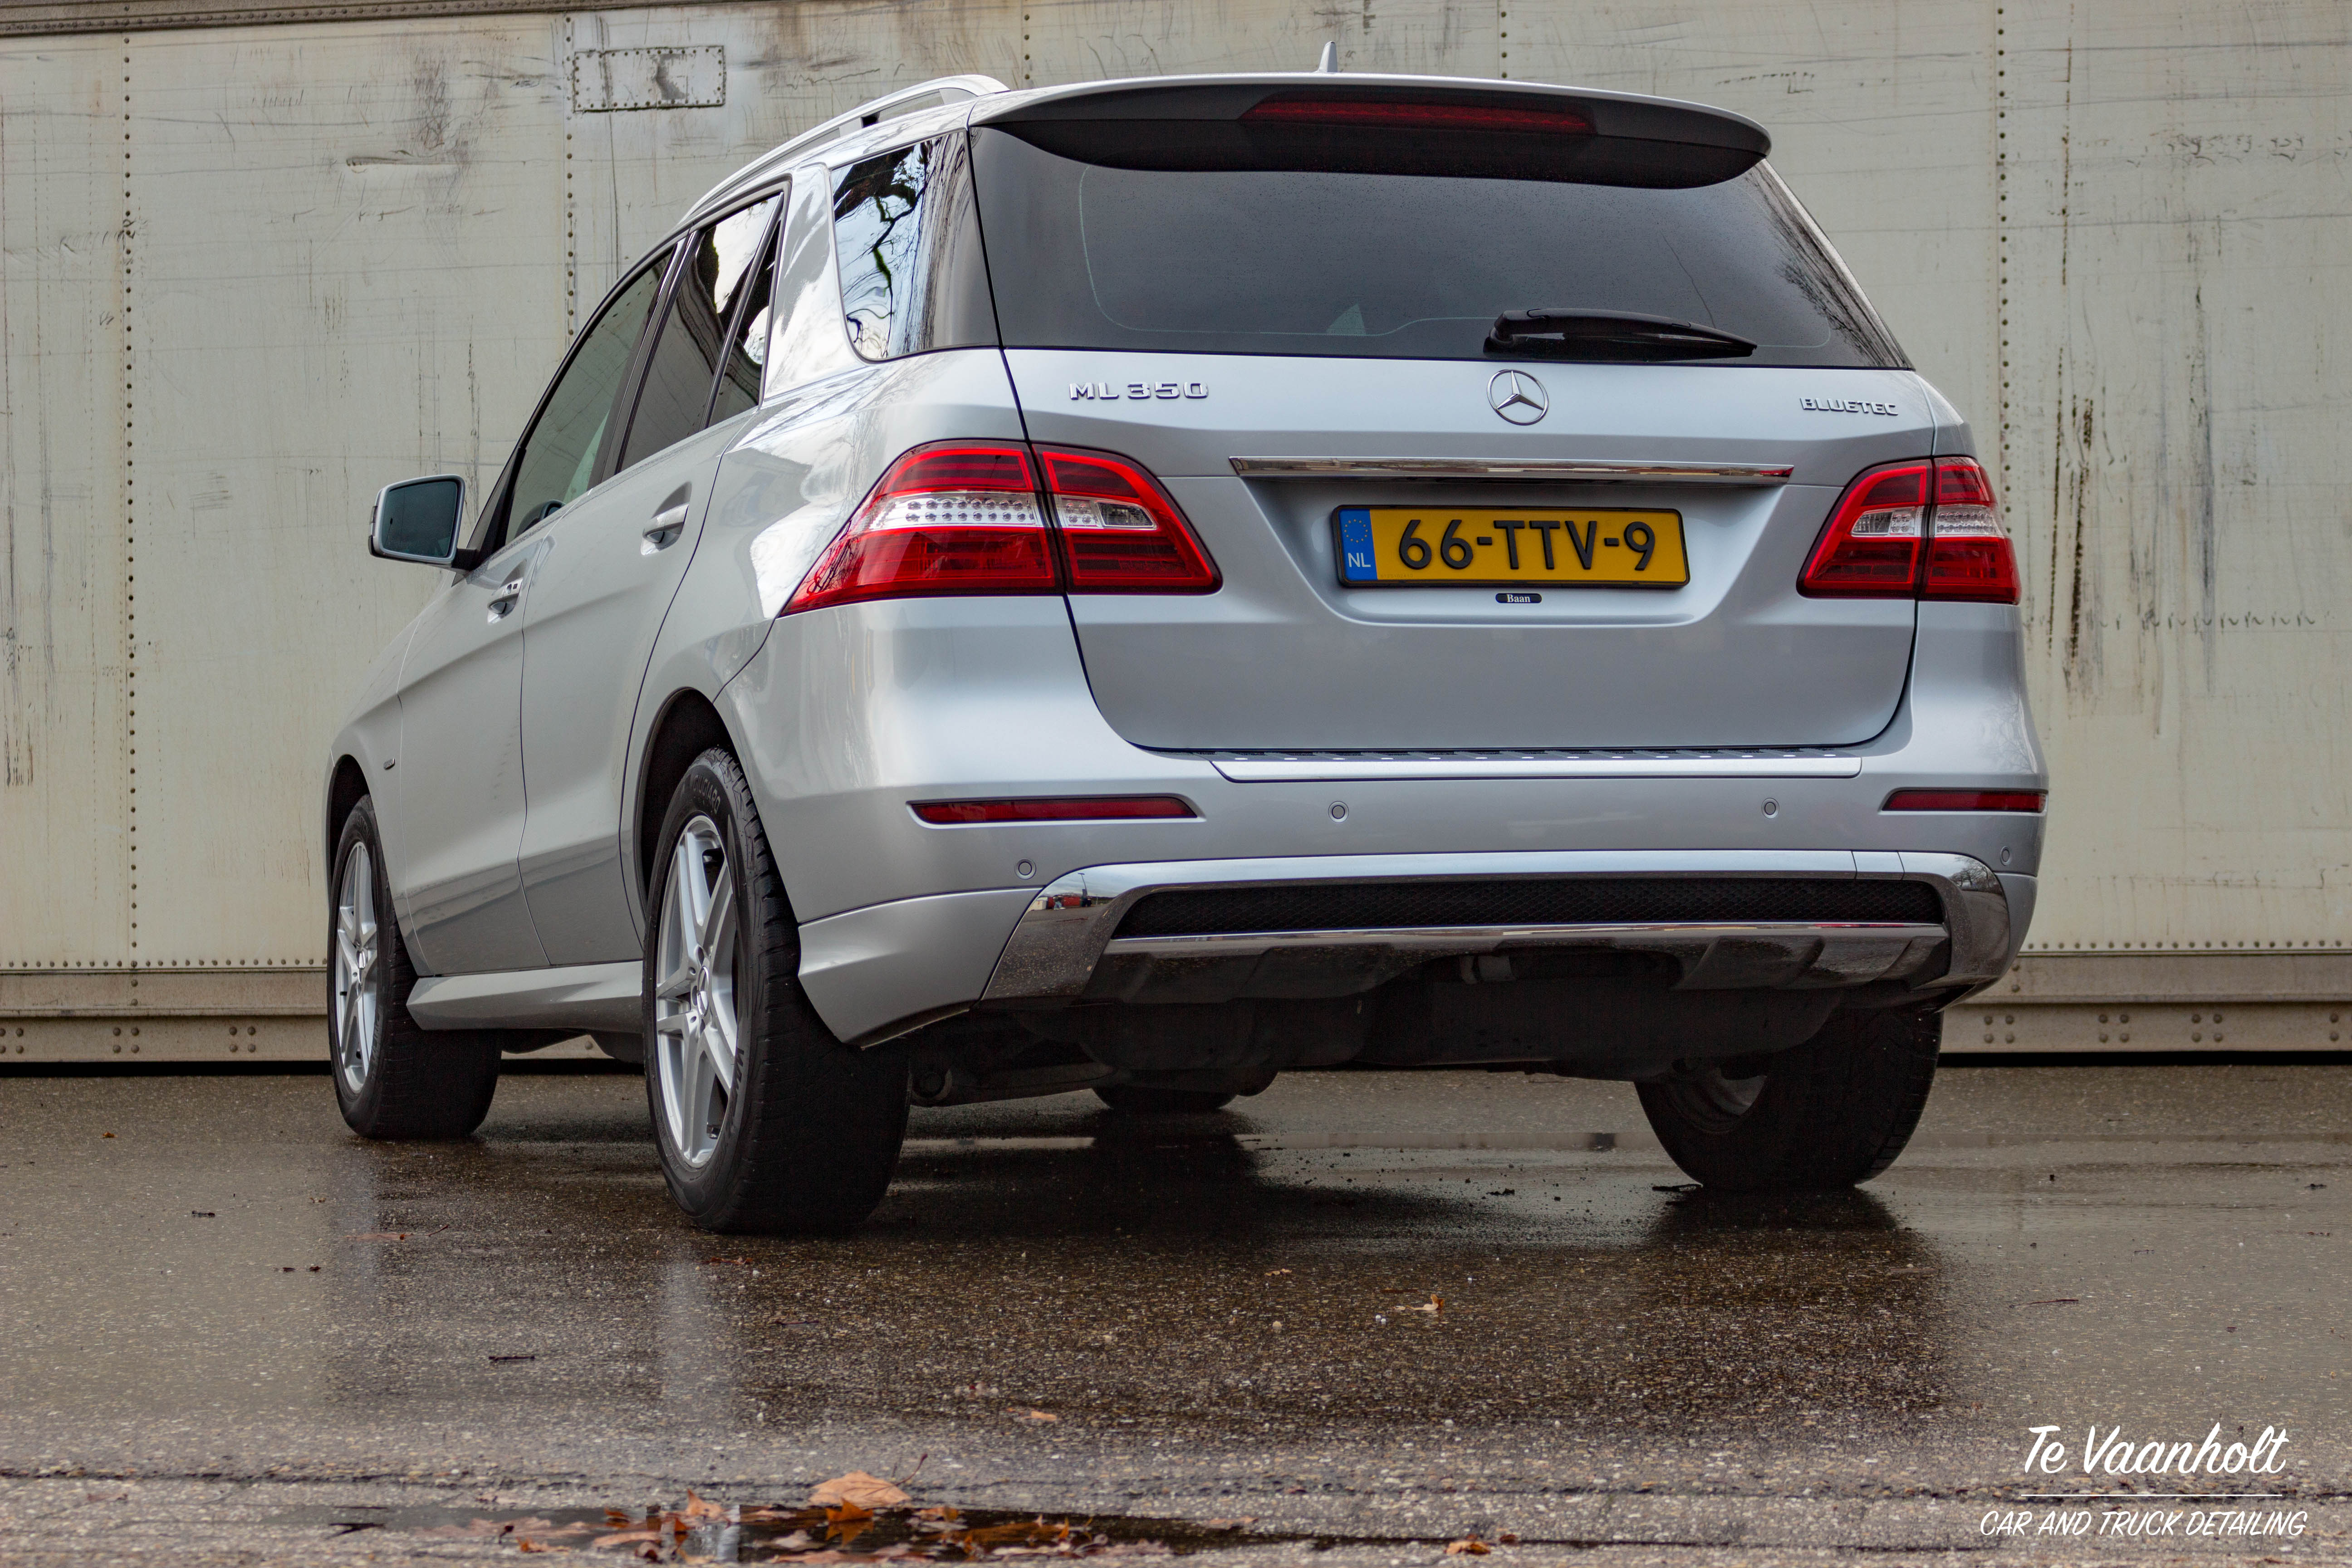 TeVaanholtCarCleaning.nl-Mercedes-Benz-ML-350-CDI-7